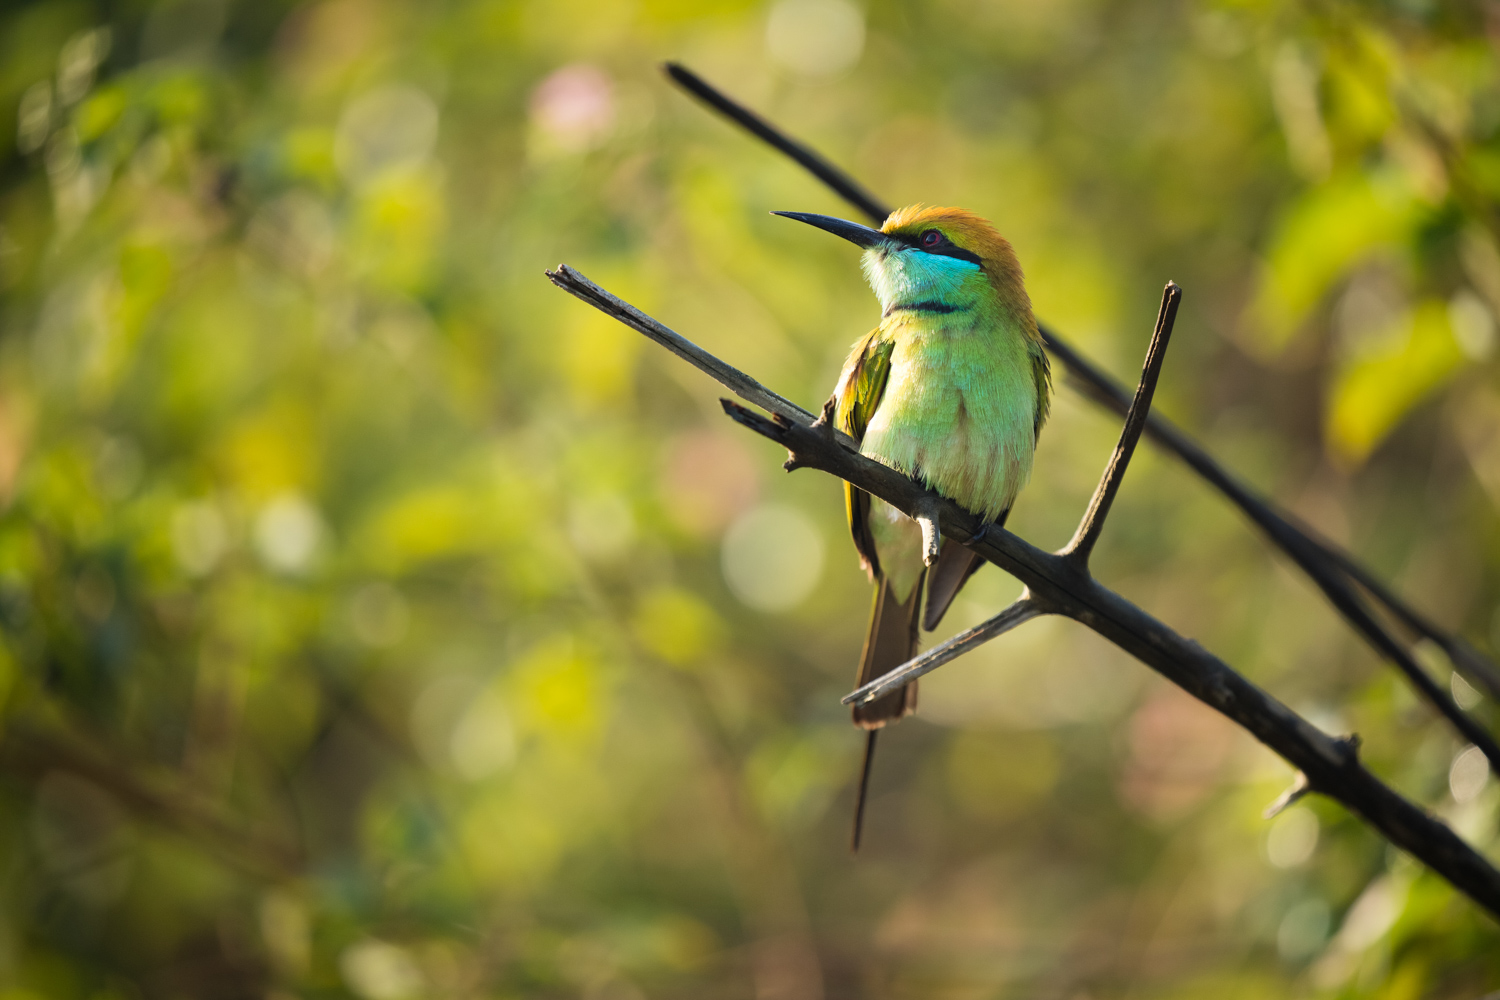 5 - 7 Mistakes to Avoid When Photographing Wildlife